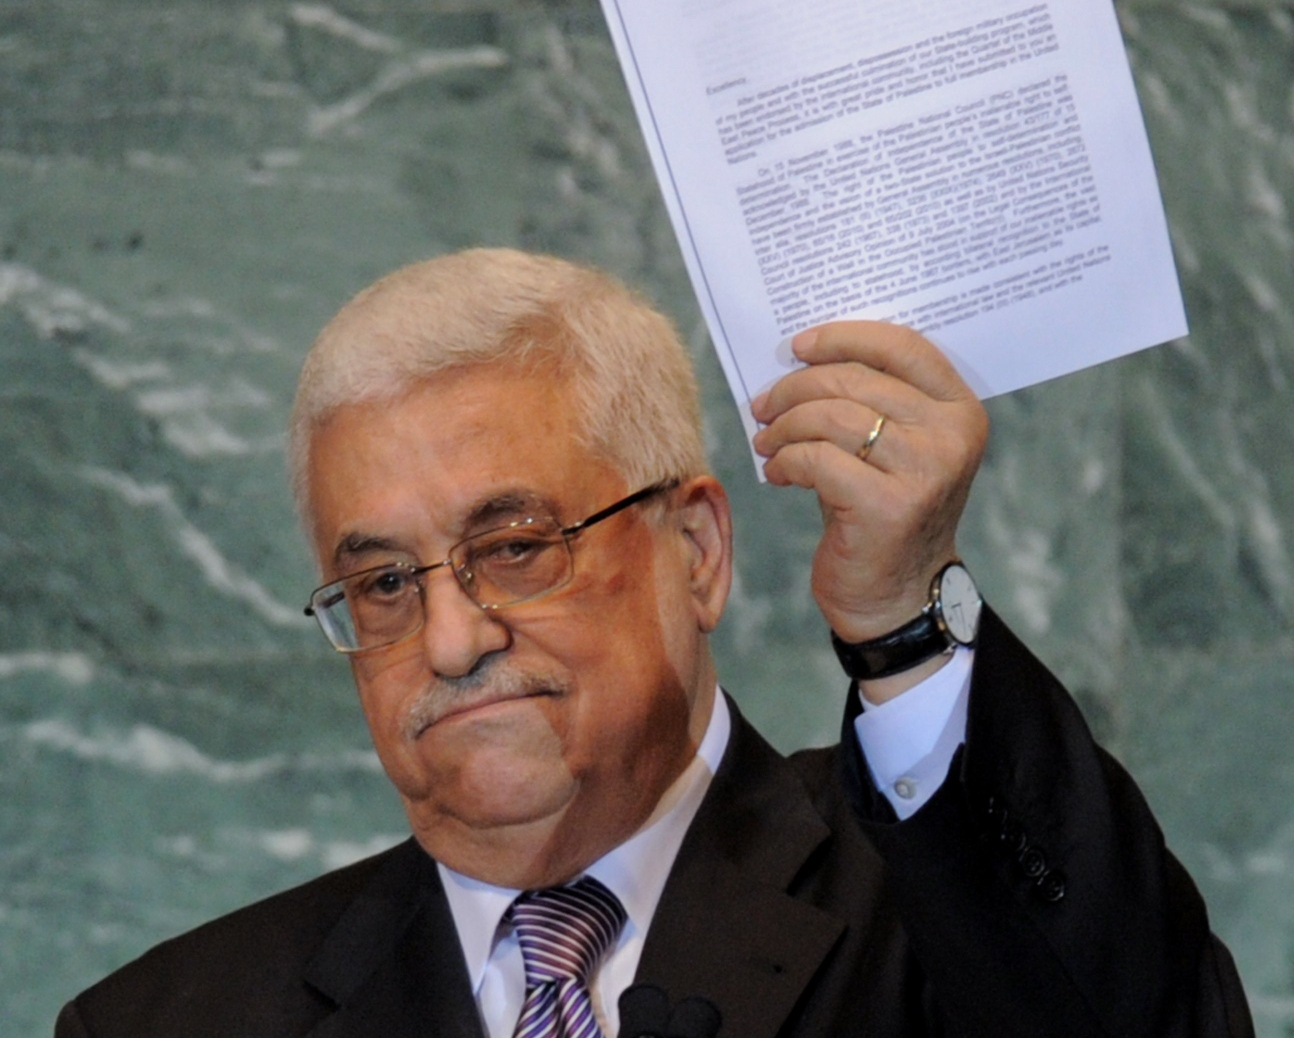 mahmoud abbas president of the palestinian authority holds a copy of the letter requesting palestinian statehood as he speaks during the united nations general assembly september 23 2011 at un headquarters in new york photo afp